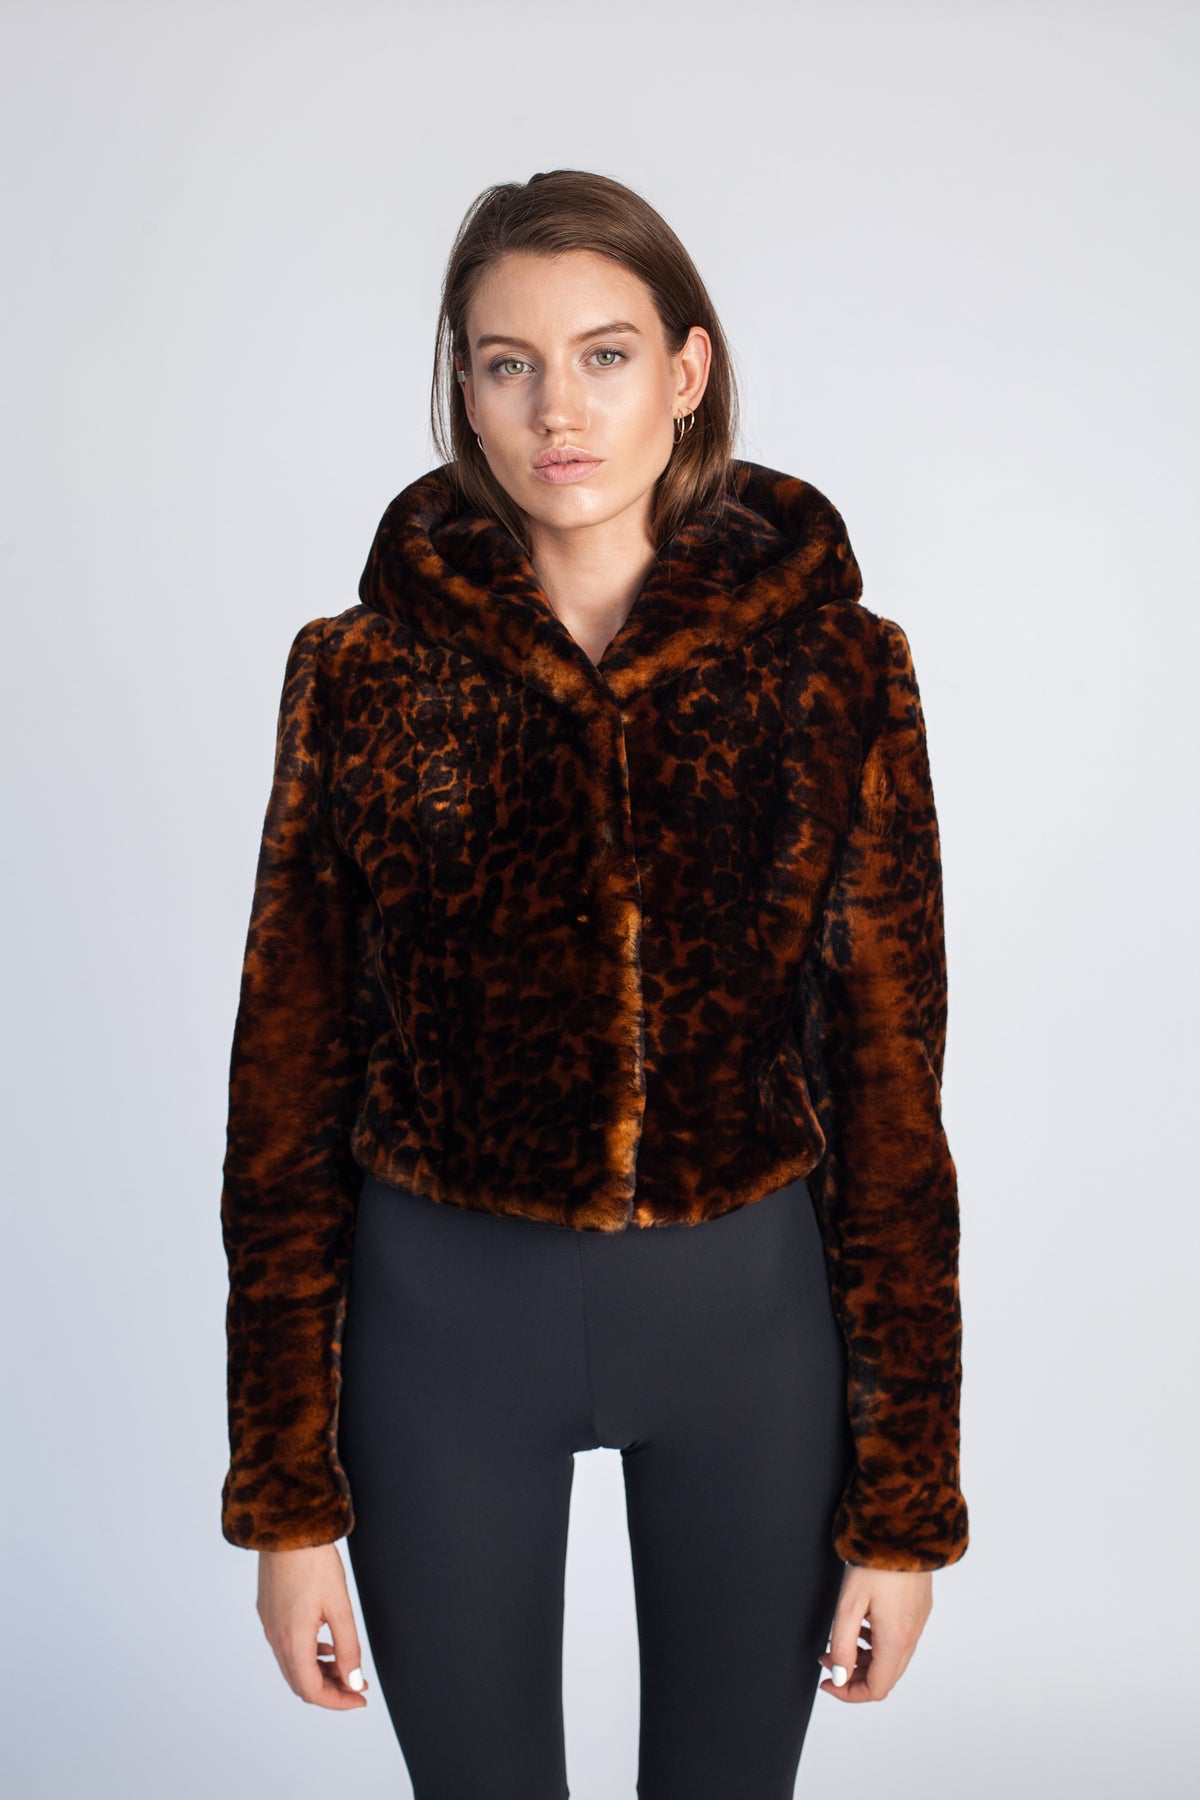 WILD-SHOW-LEOPARD-PRINT-SHEARLING-FUR-JACKET-le-slap-clothing-outwear.jpg